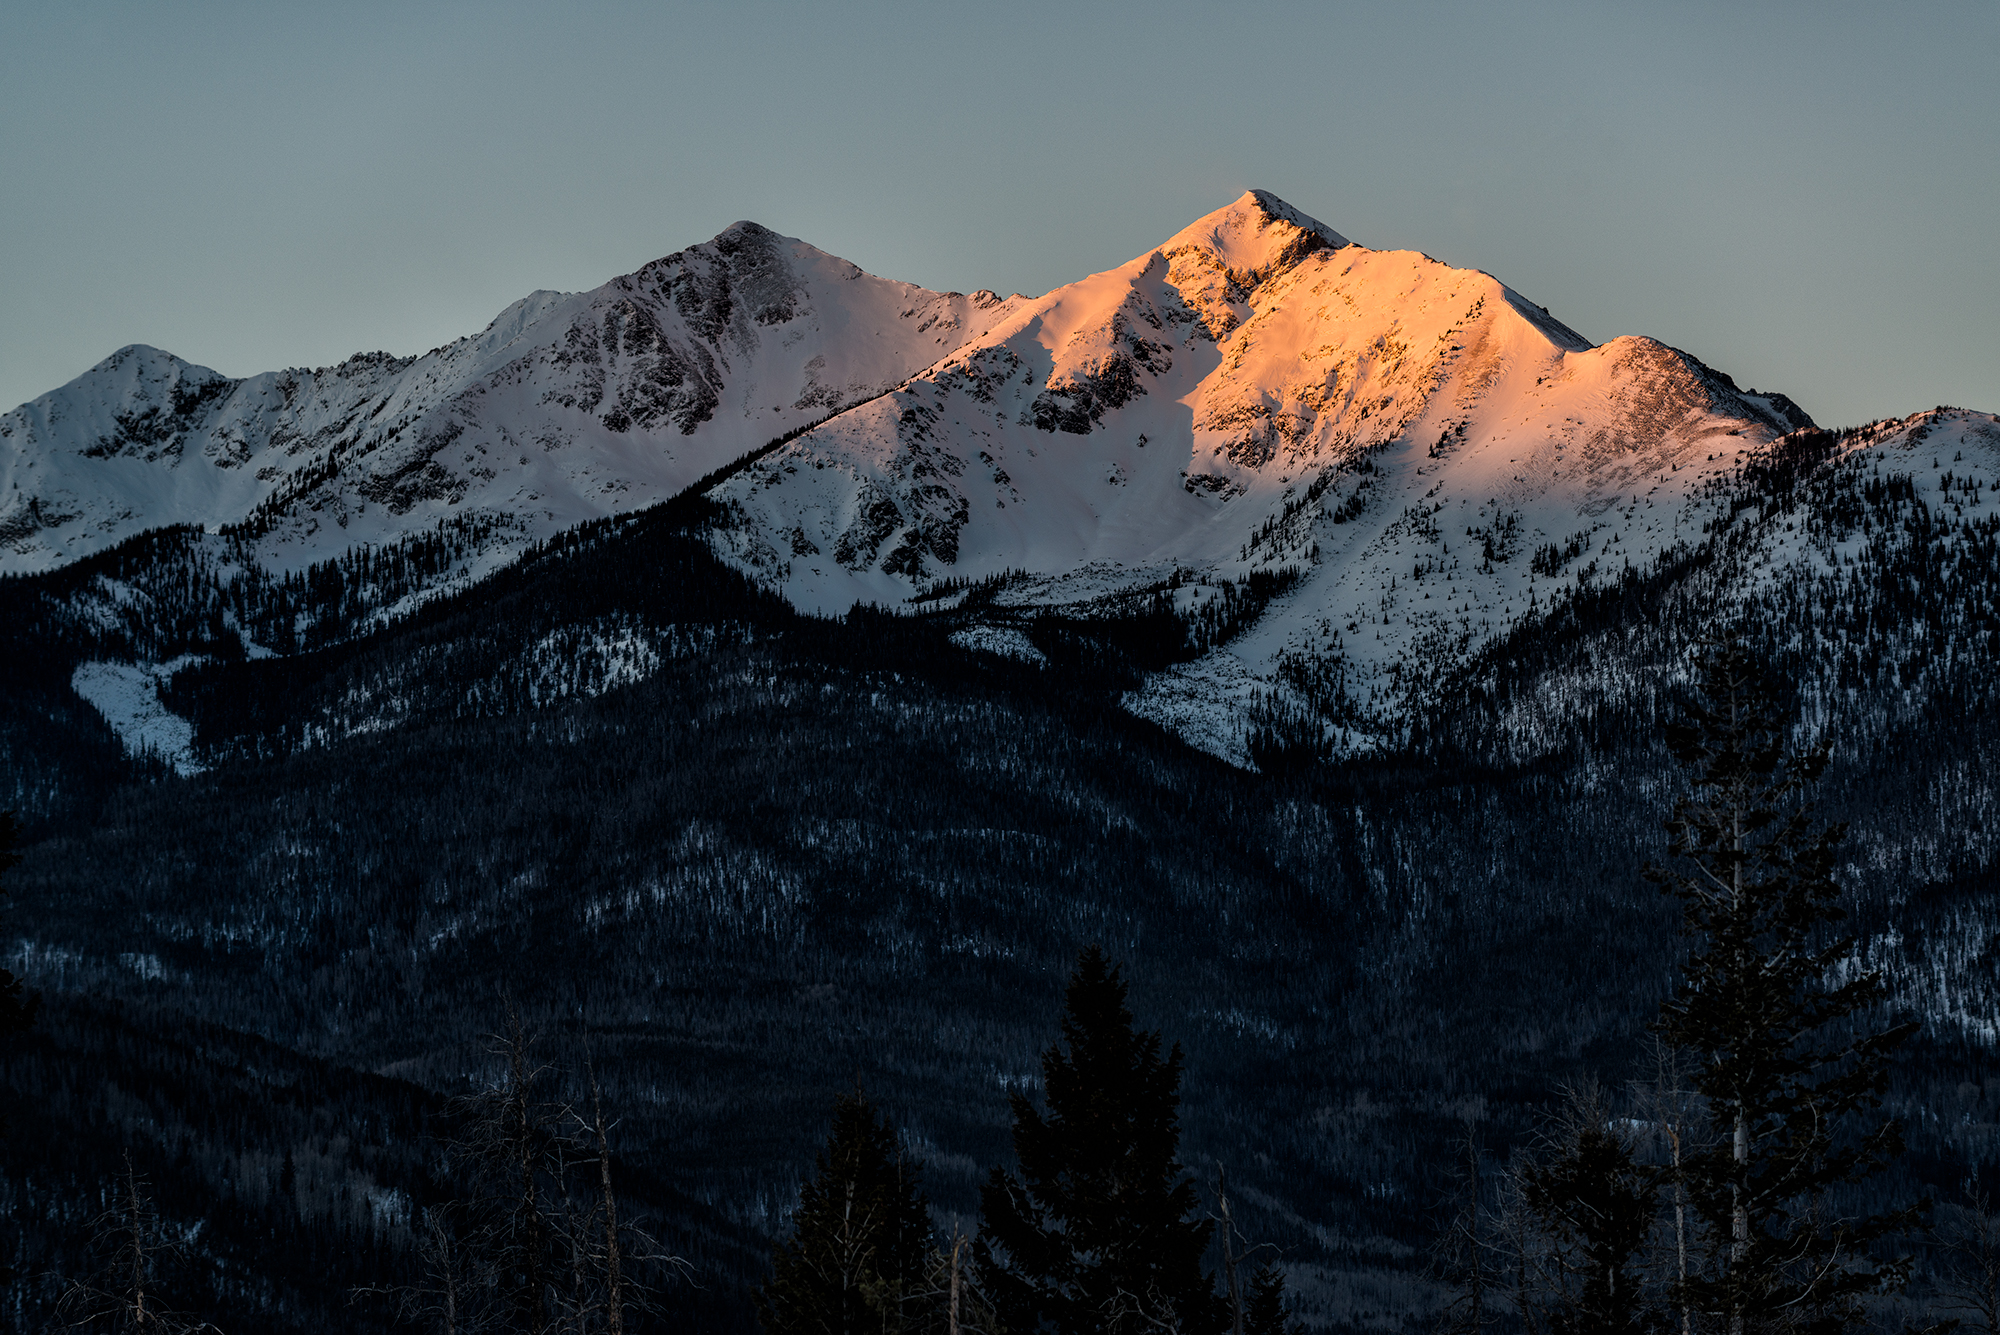 First Light on Tenmile Peak. Near Frisco, Colorado, 2016